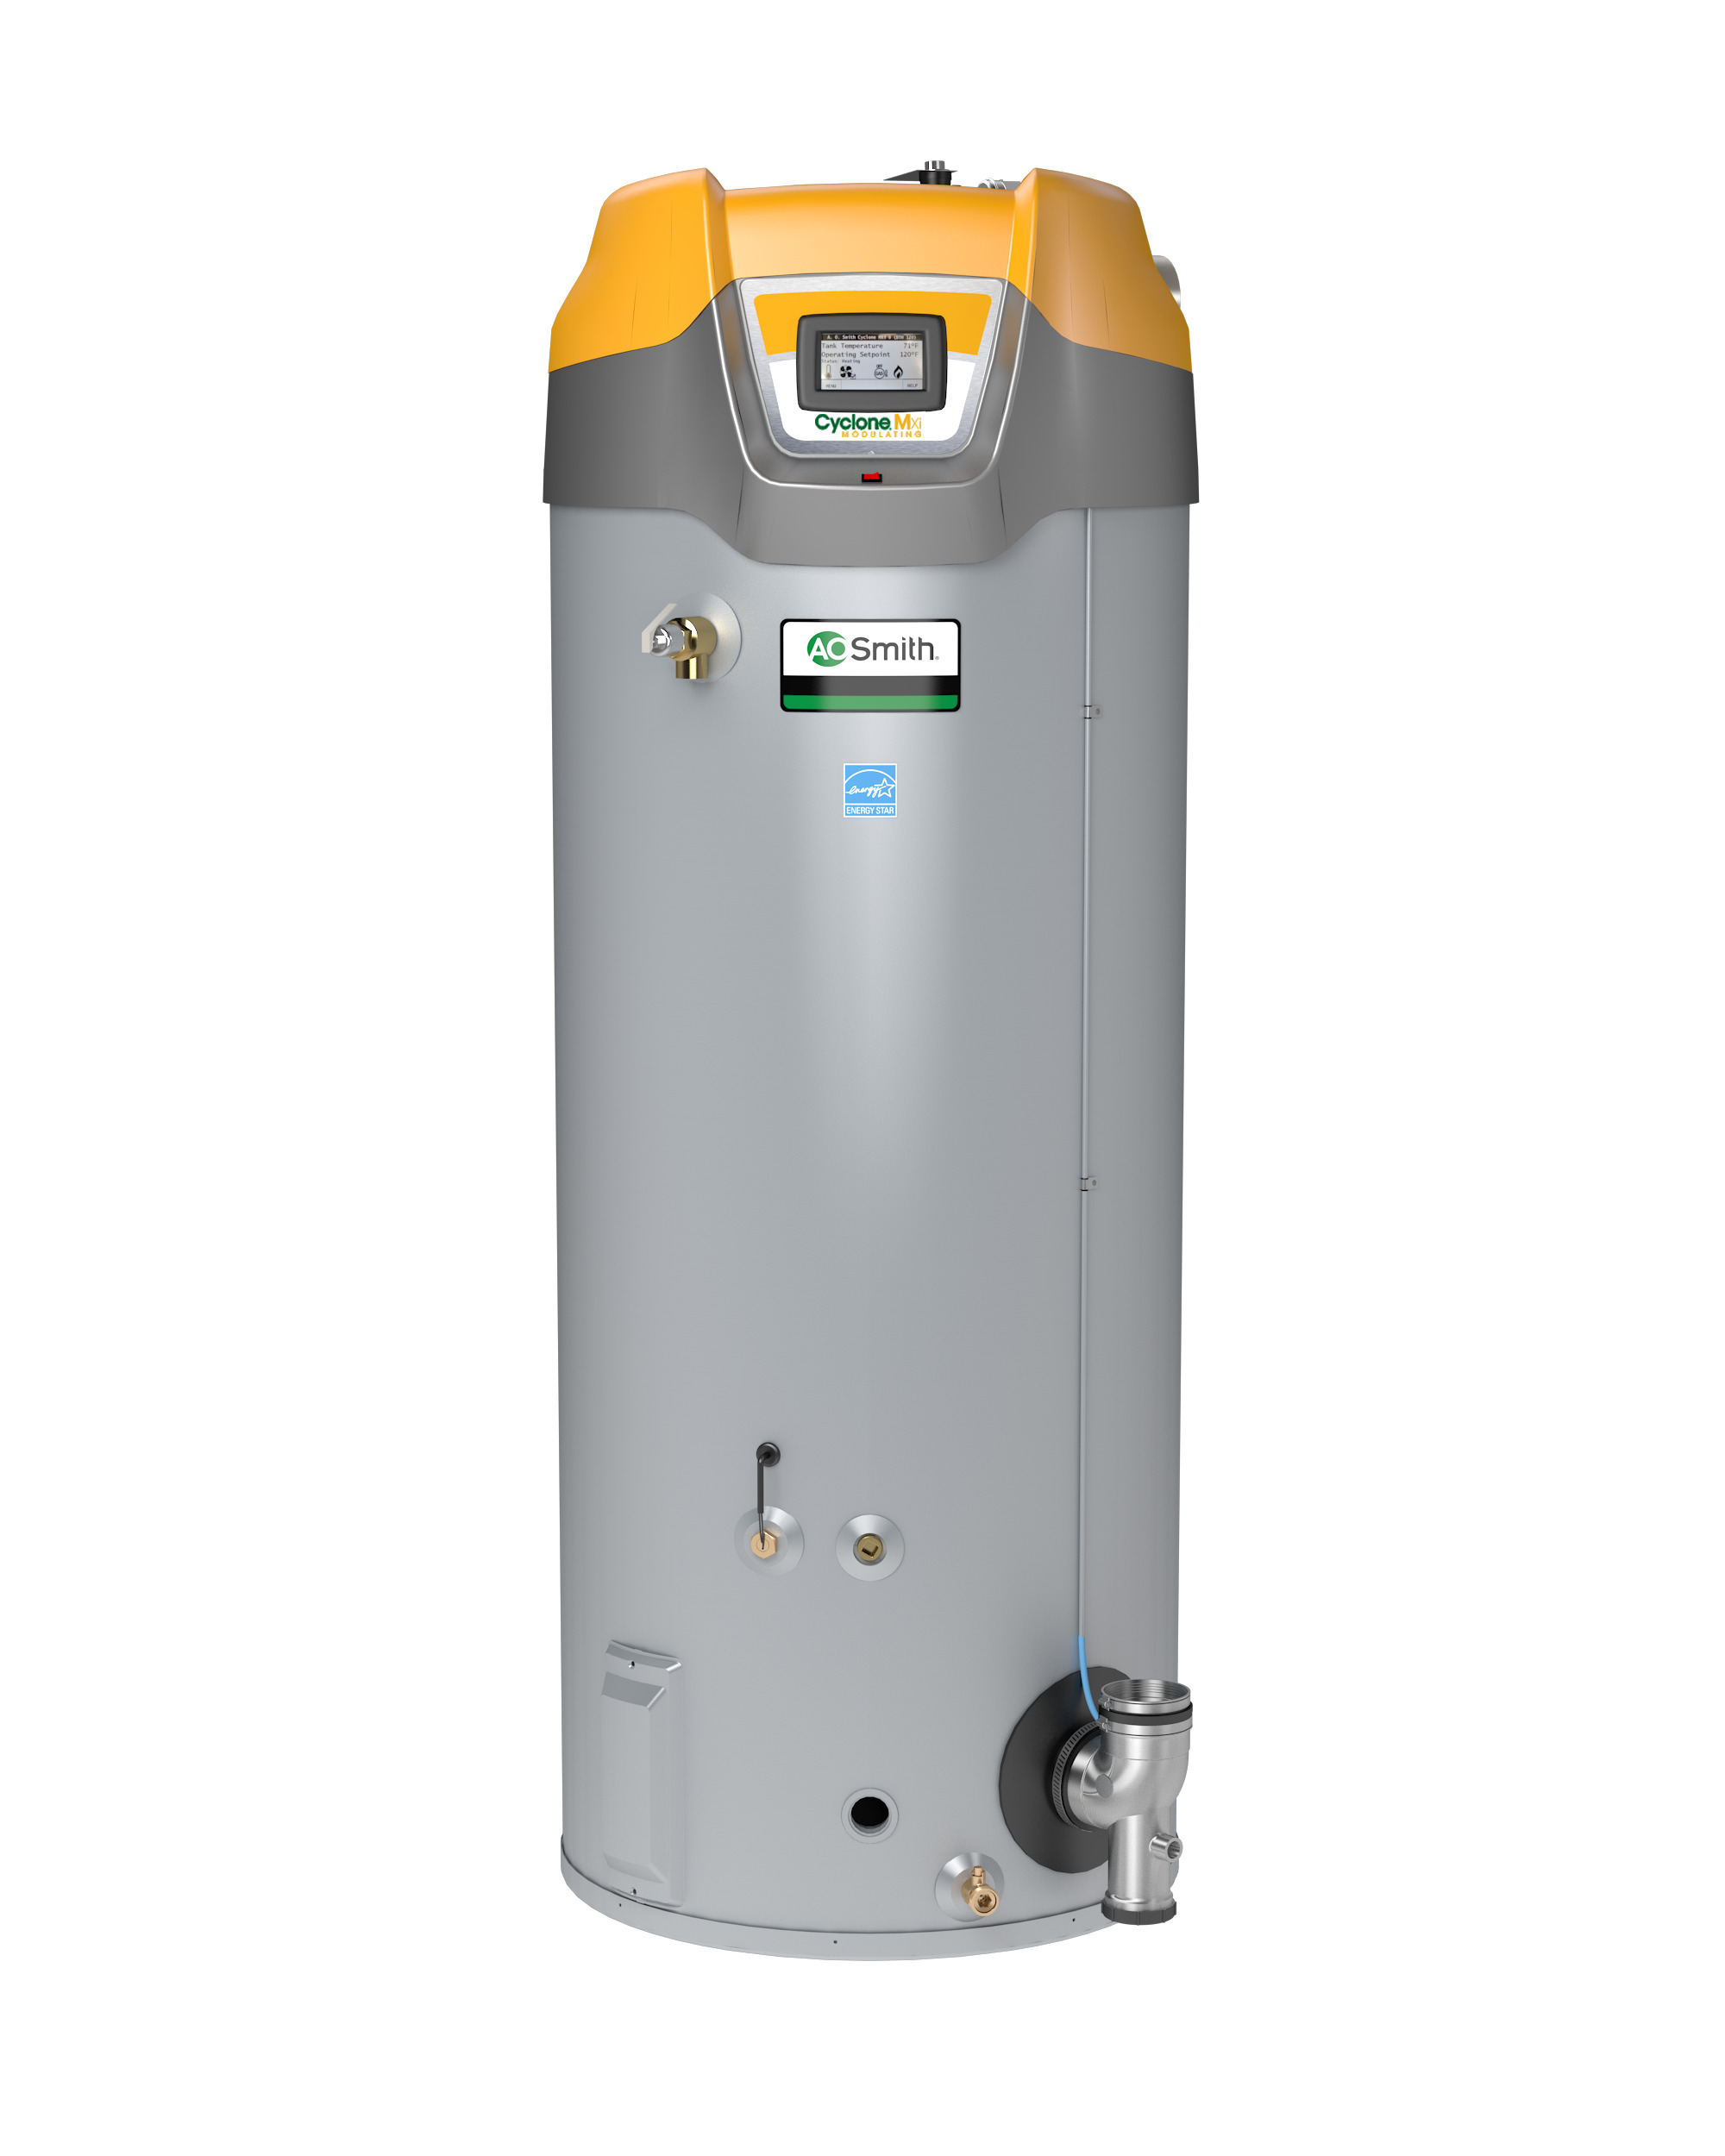 AO SMITH BTH-120A-LP: 60 GALLON, 125,000-BTU, UP TO 95% THERMAL EFFICIENCY, ASME, 3inch VENT, LP (LIQUID PROPANE) CYCLONE Mxi MODULATING COMMERCIAL GAS WATER HEATER